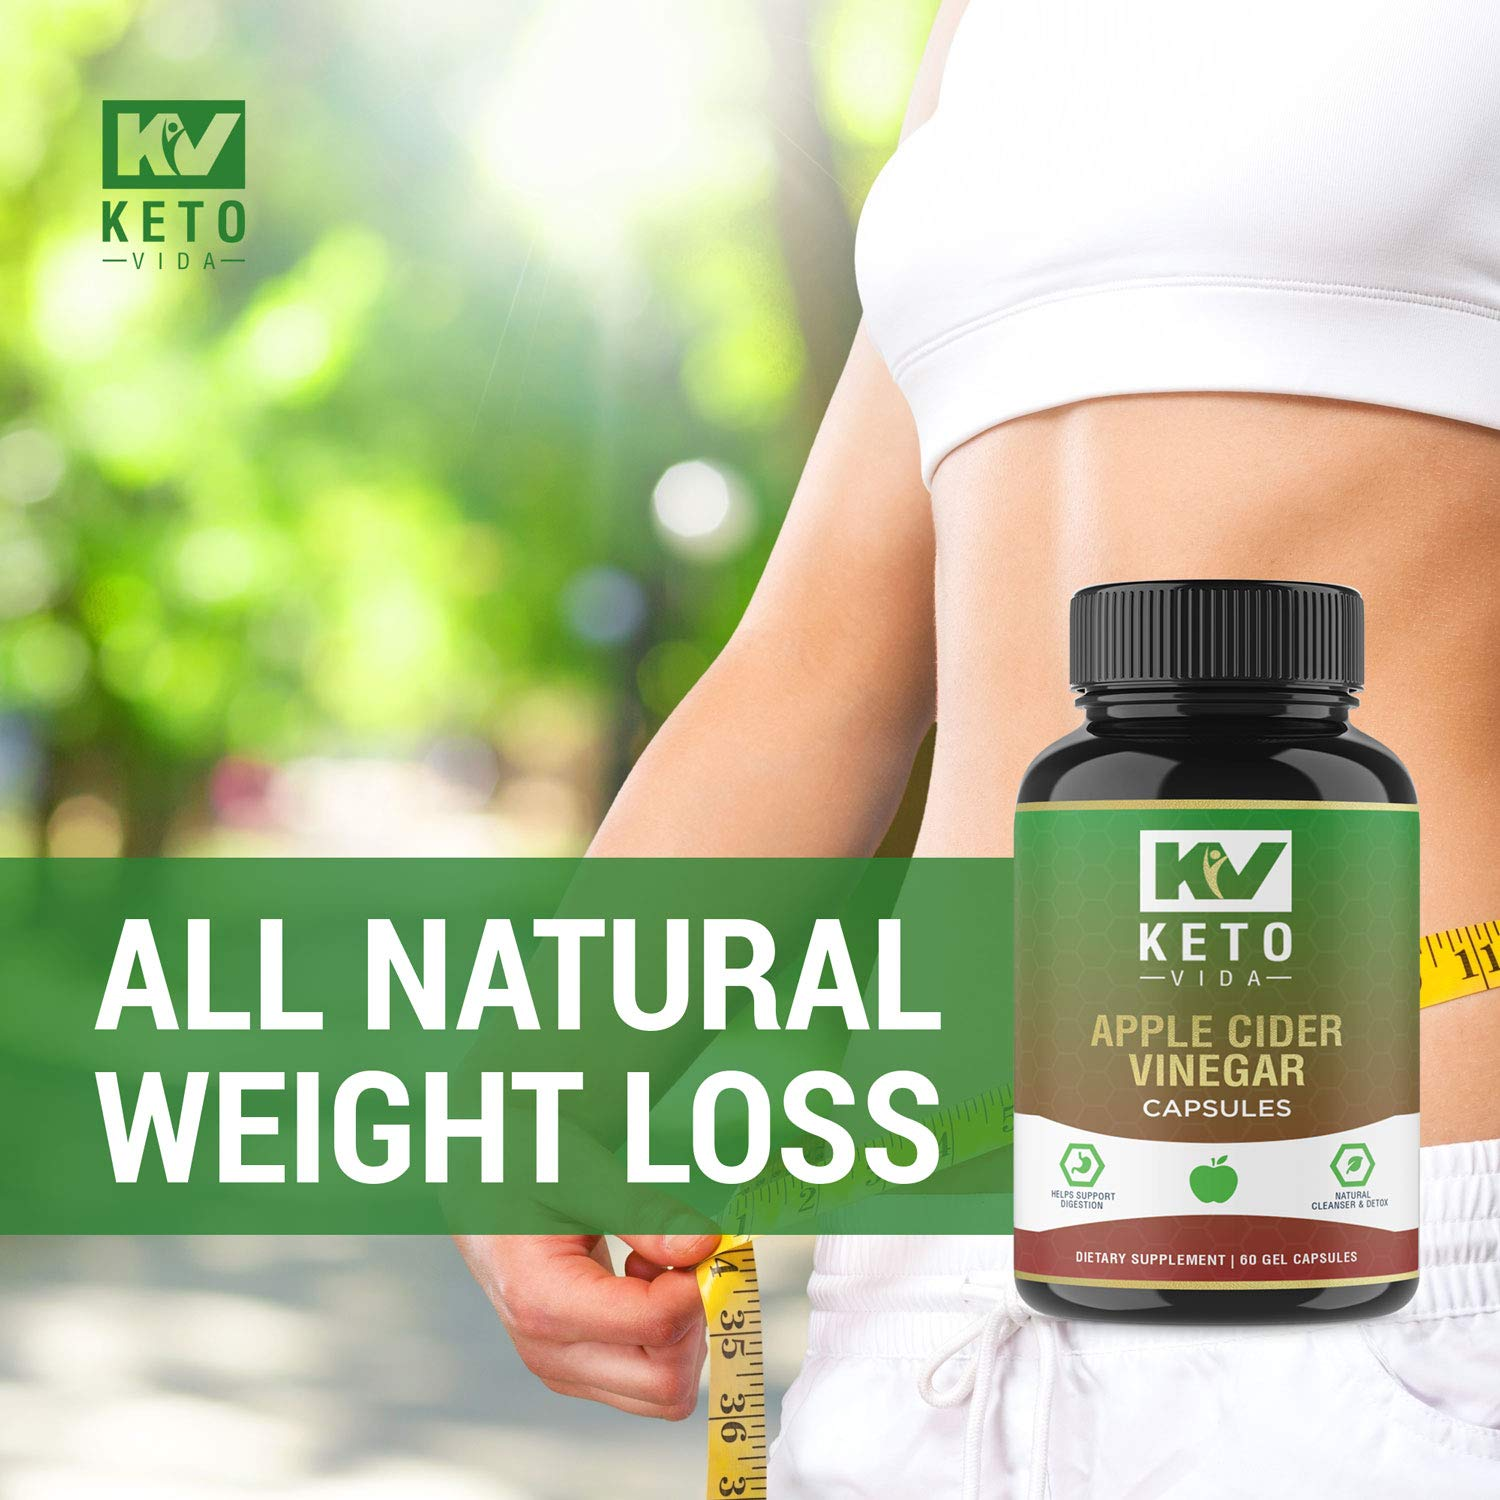 Apple Cider Vinegar Pills - Natural Detox and Weight Loss for Women and Men, Effective Cleanse to Help Digestion and Bloating Relief, Organic Extra Strength ACV Capsules by Keto Vida (Image #7)